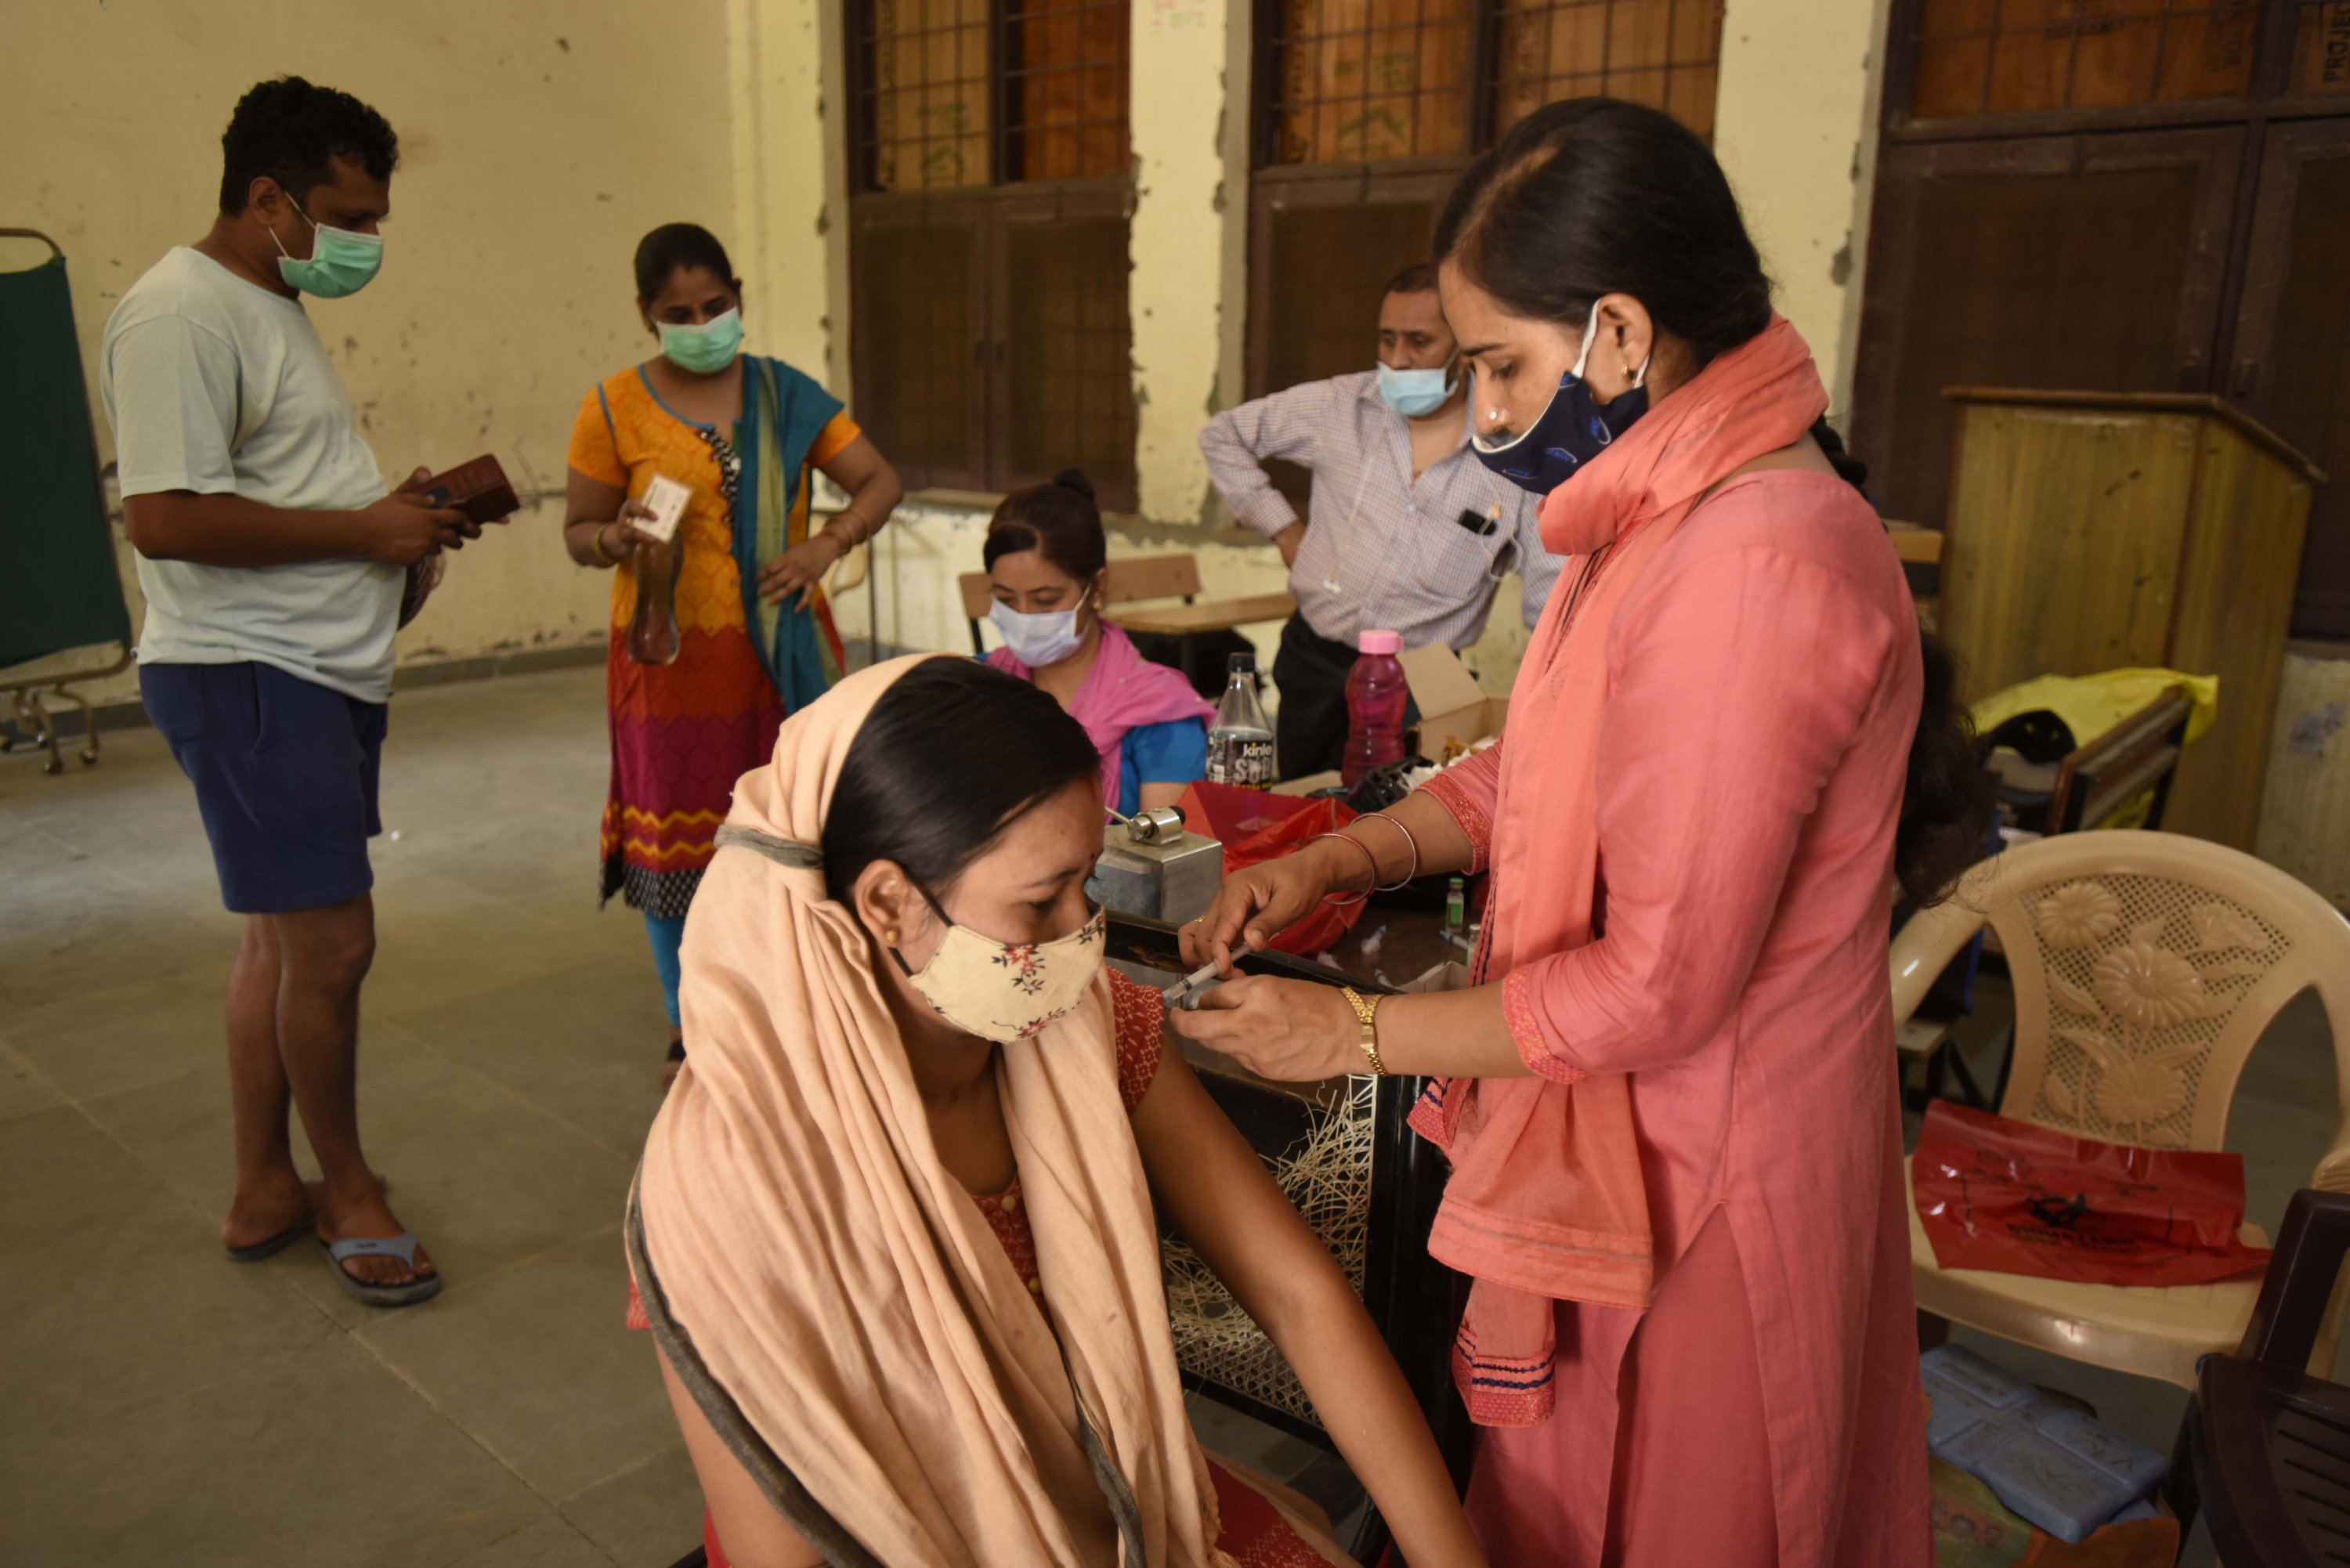 A health worker administers a dose of COVID-19 vaccine to a beneficiary, at a government school in Shivaji Nagar, in Gurugram, India, Aug. 17, 2021. (Photo by Getty Images)